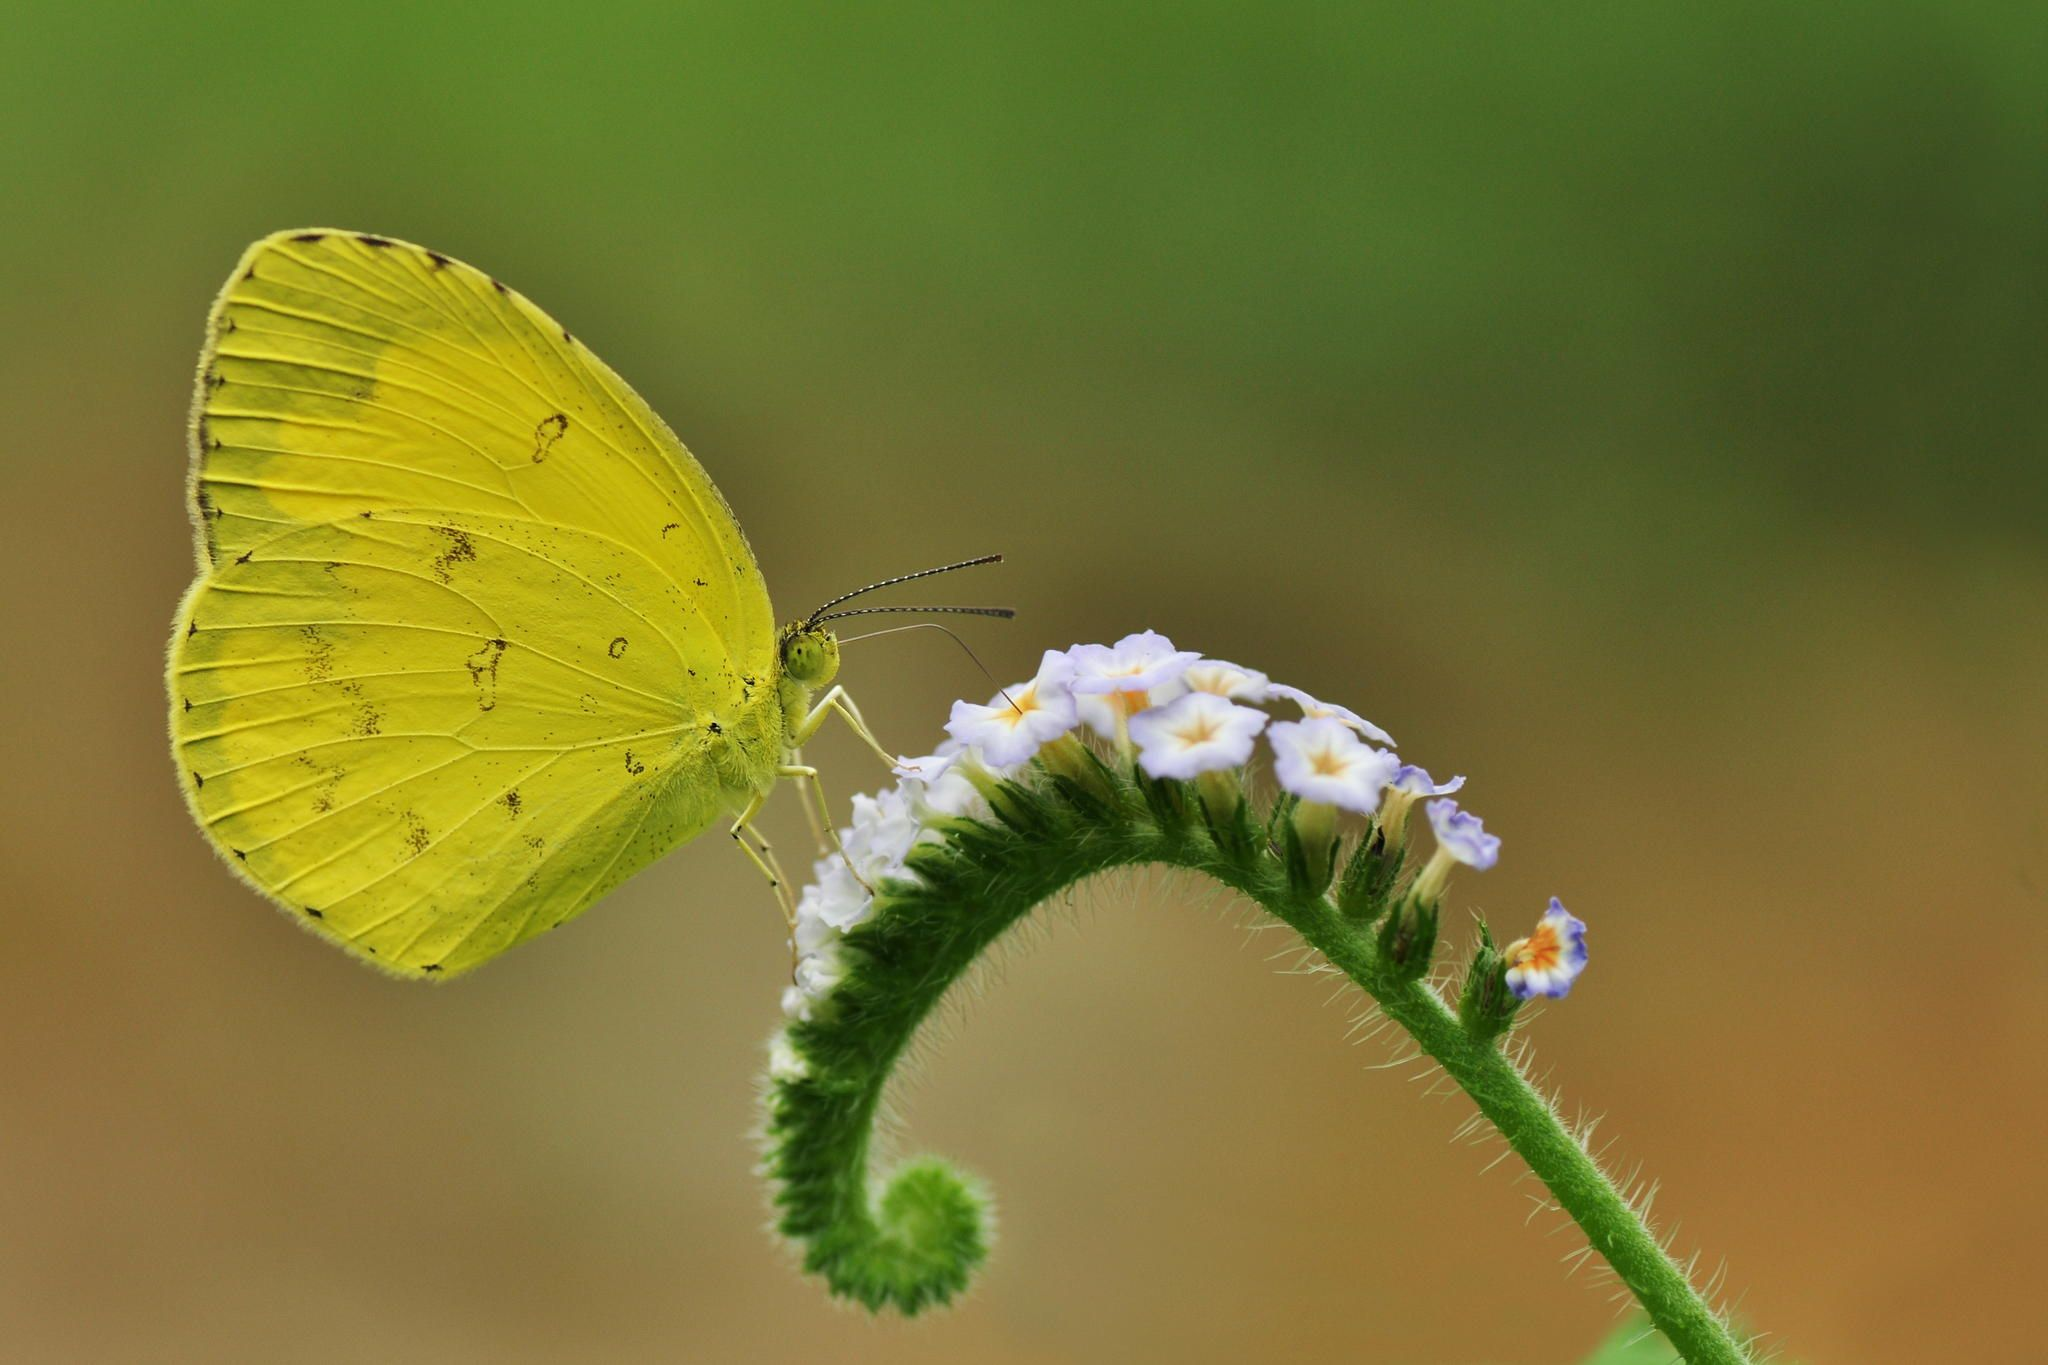 Common Grass Yellow by arindom bora on 500px